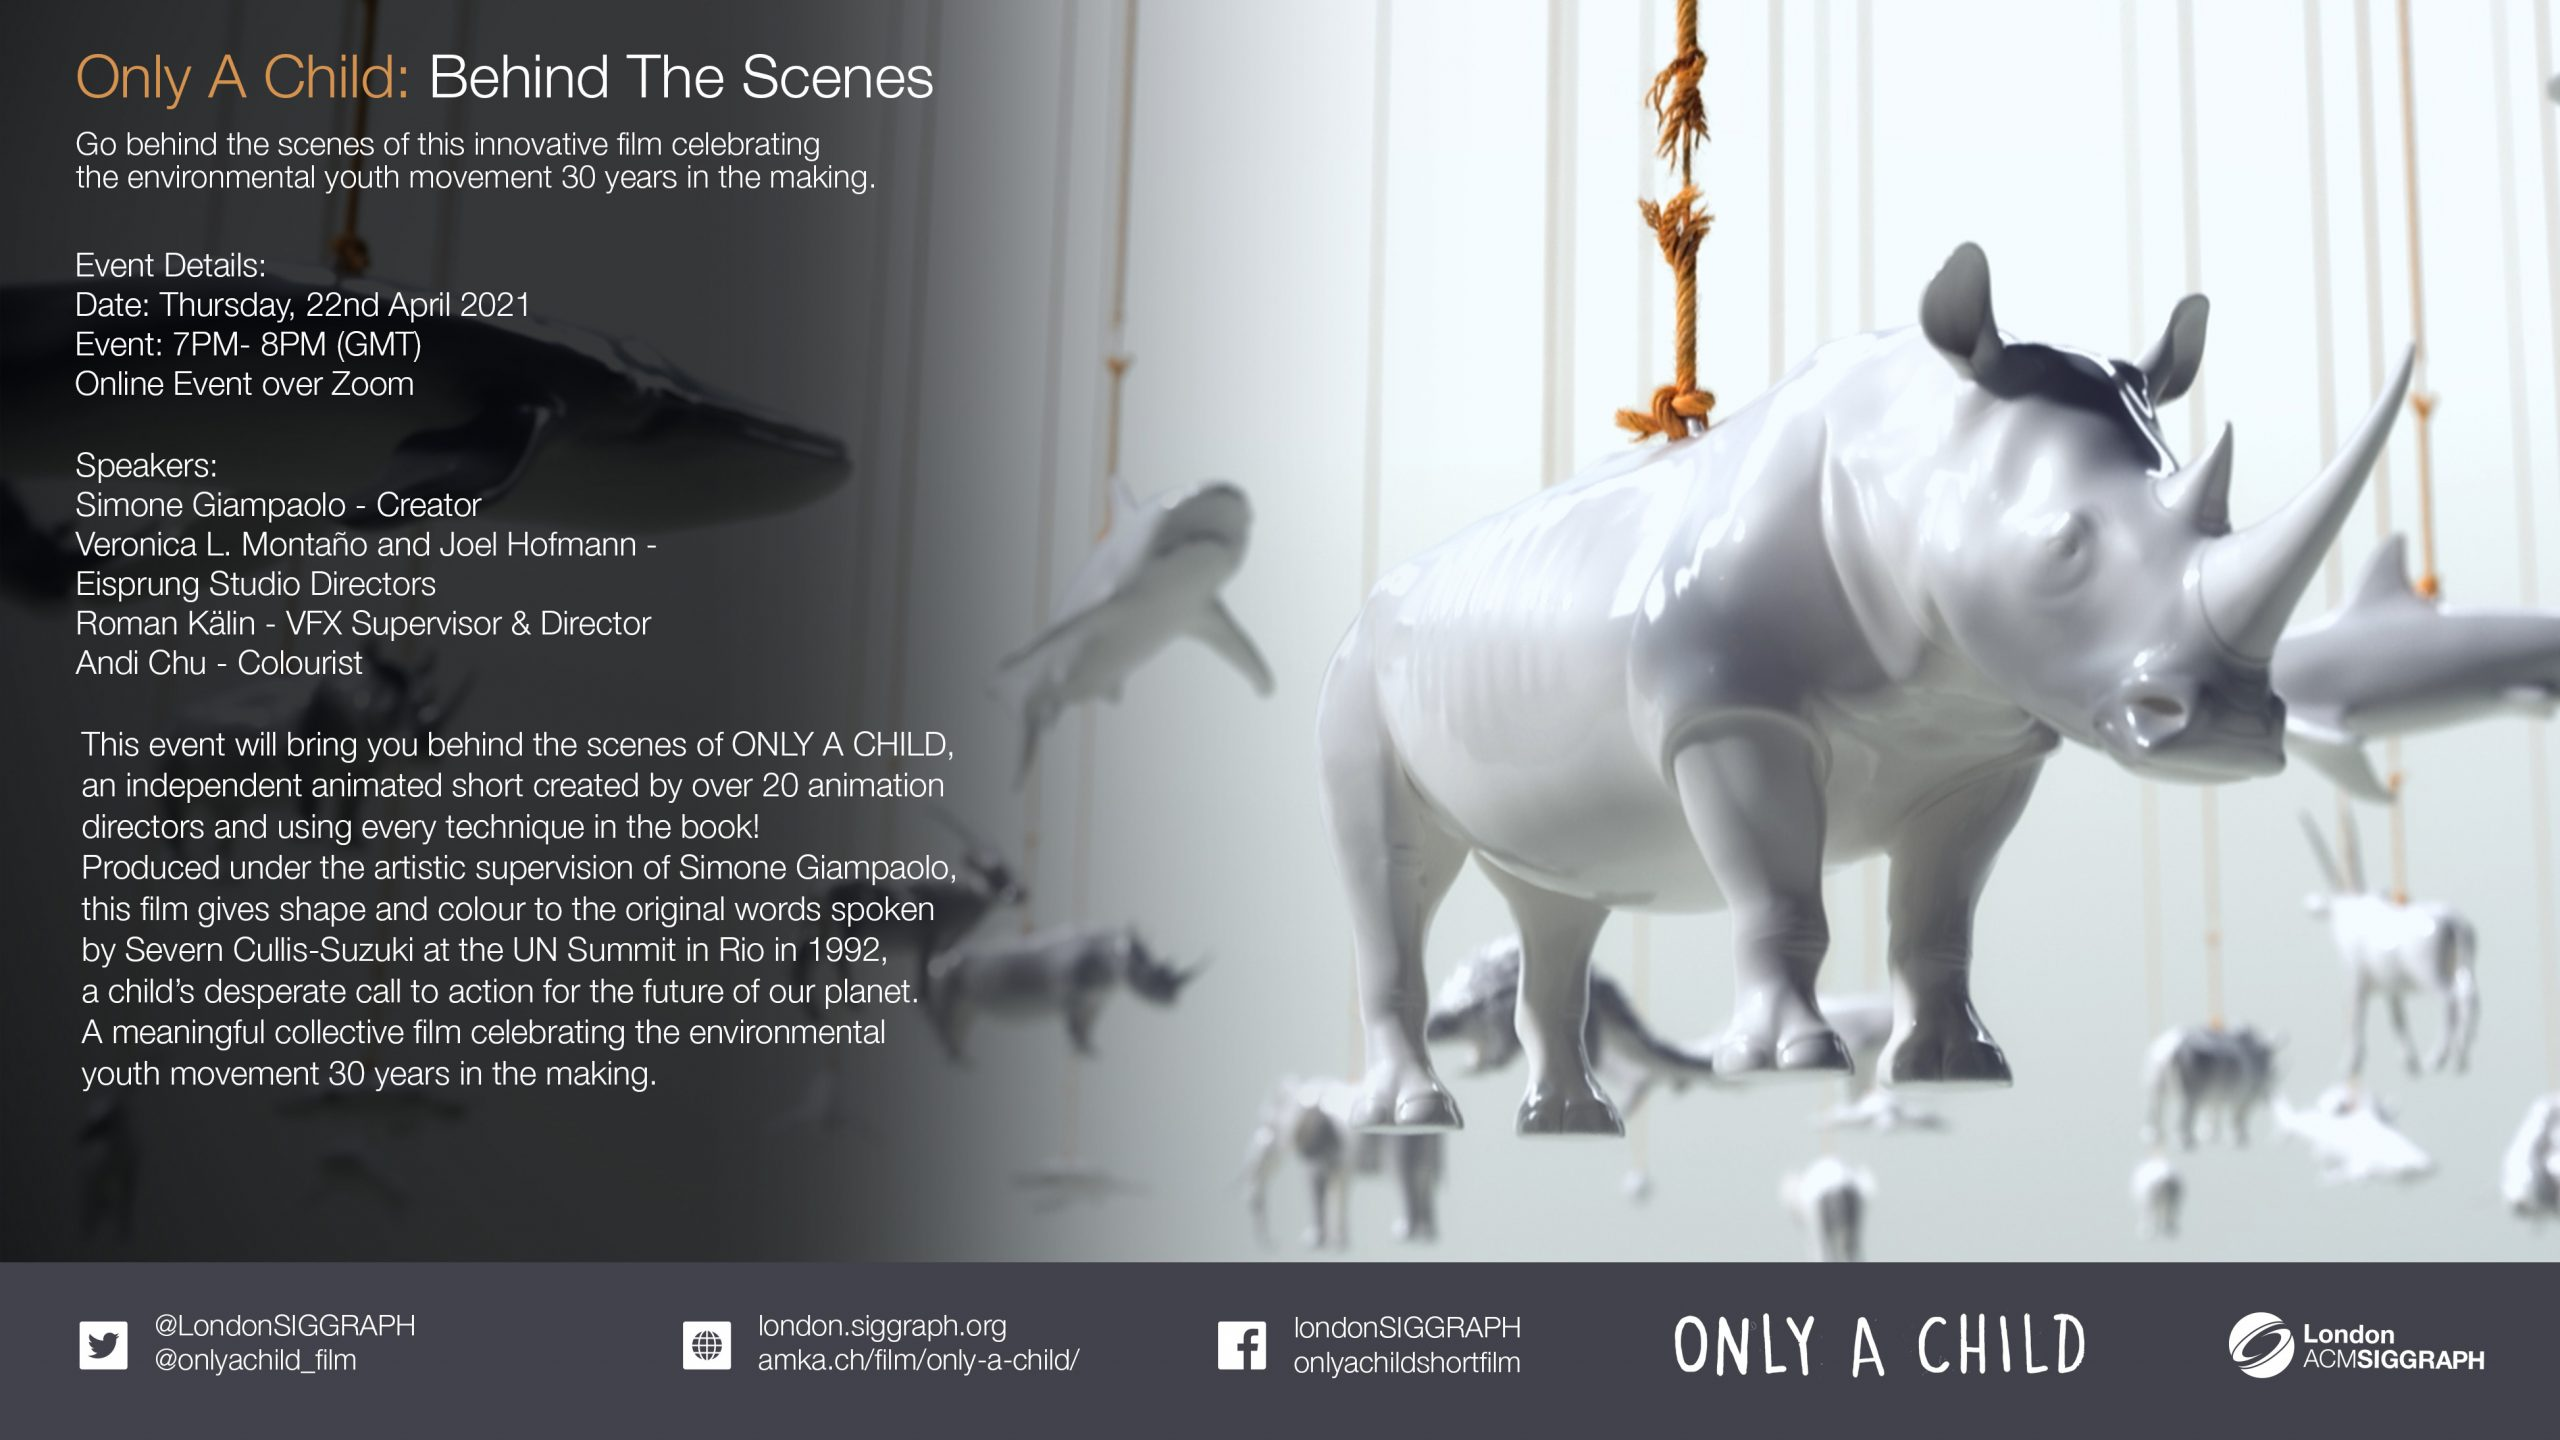 ONLY A CHILD: Behind The Scenes Poster